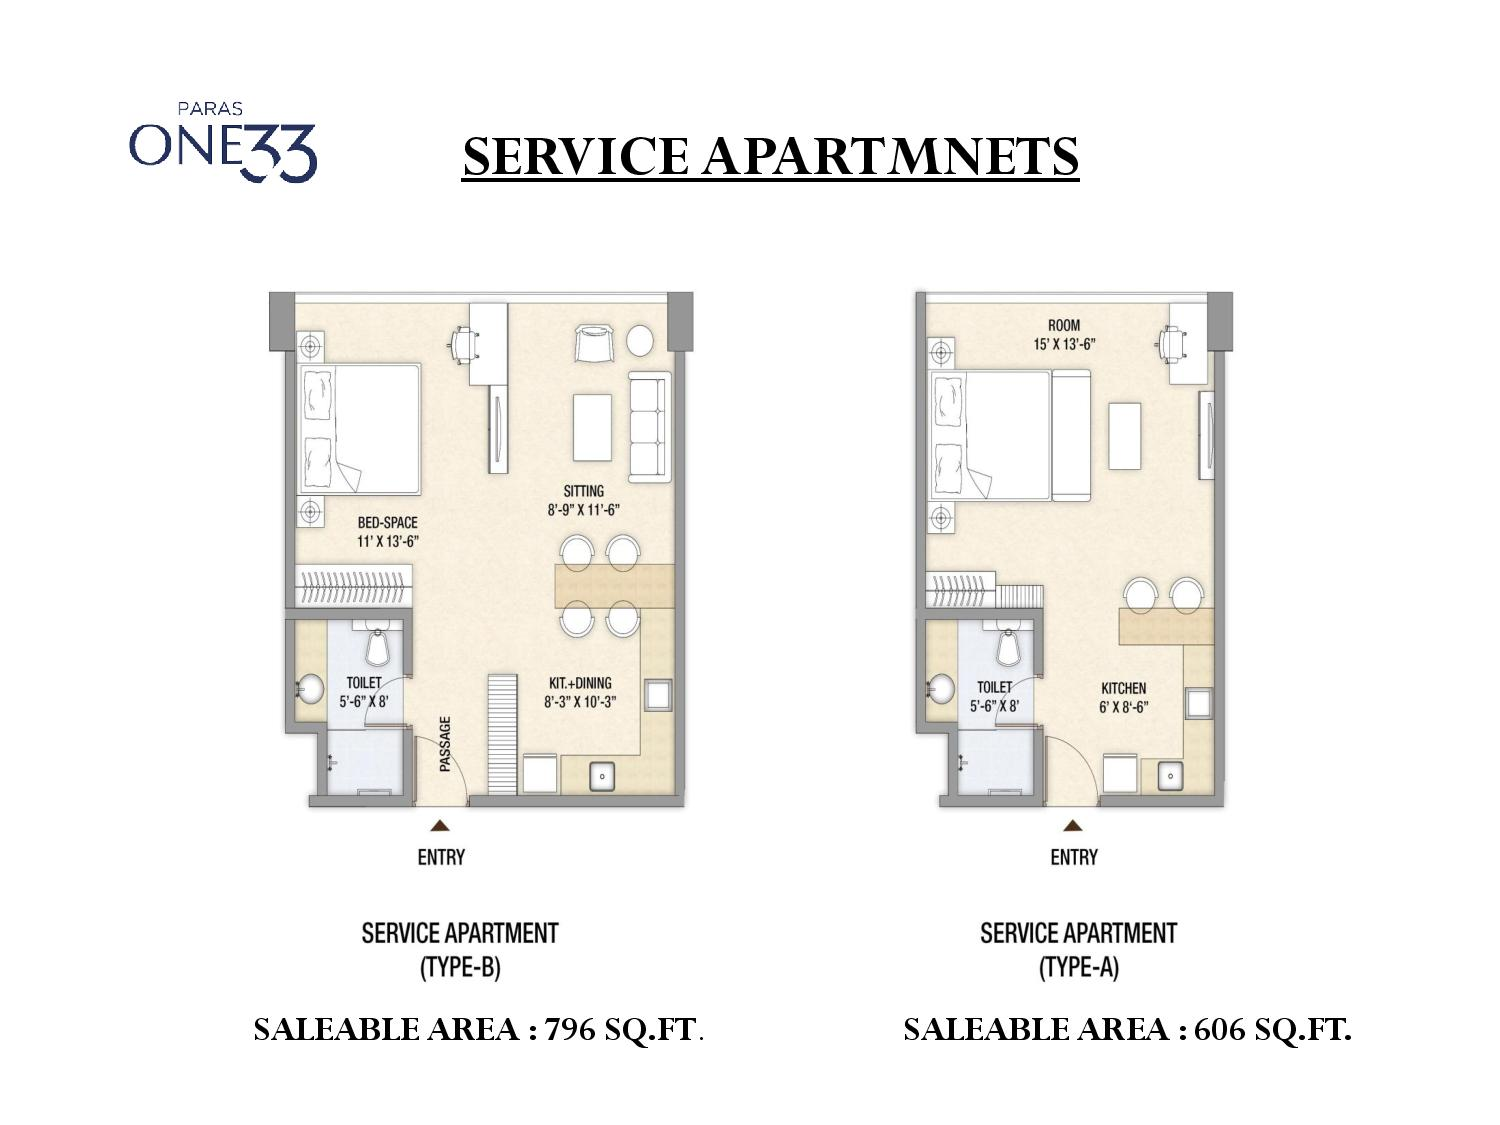 Paras one33 noida retail shops and service apartments for Retail apartment plans